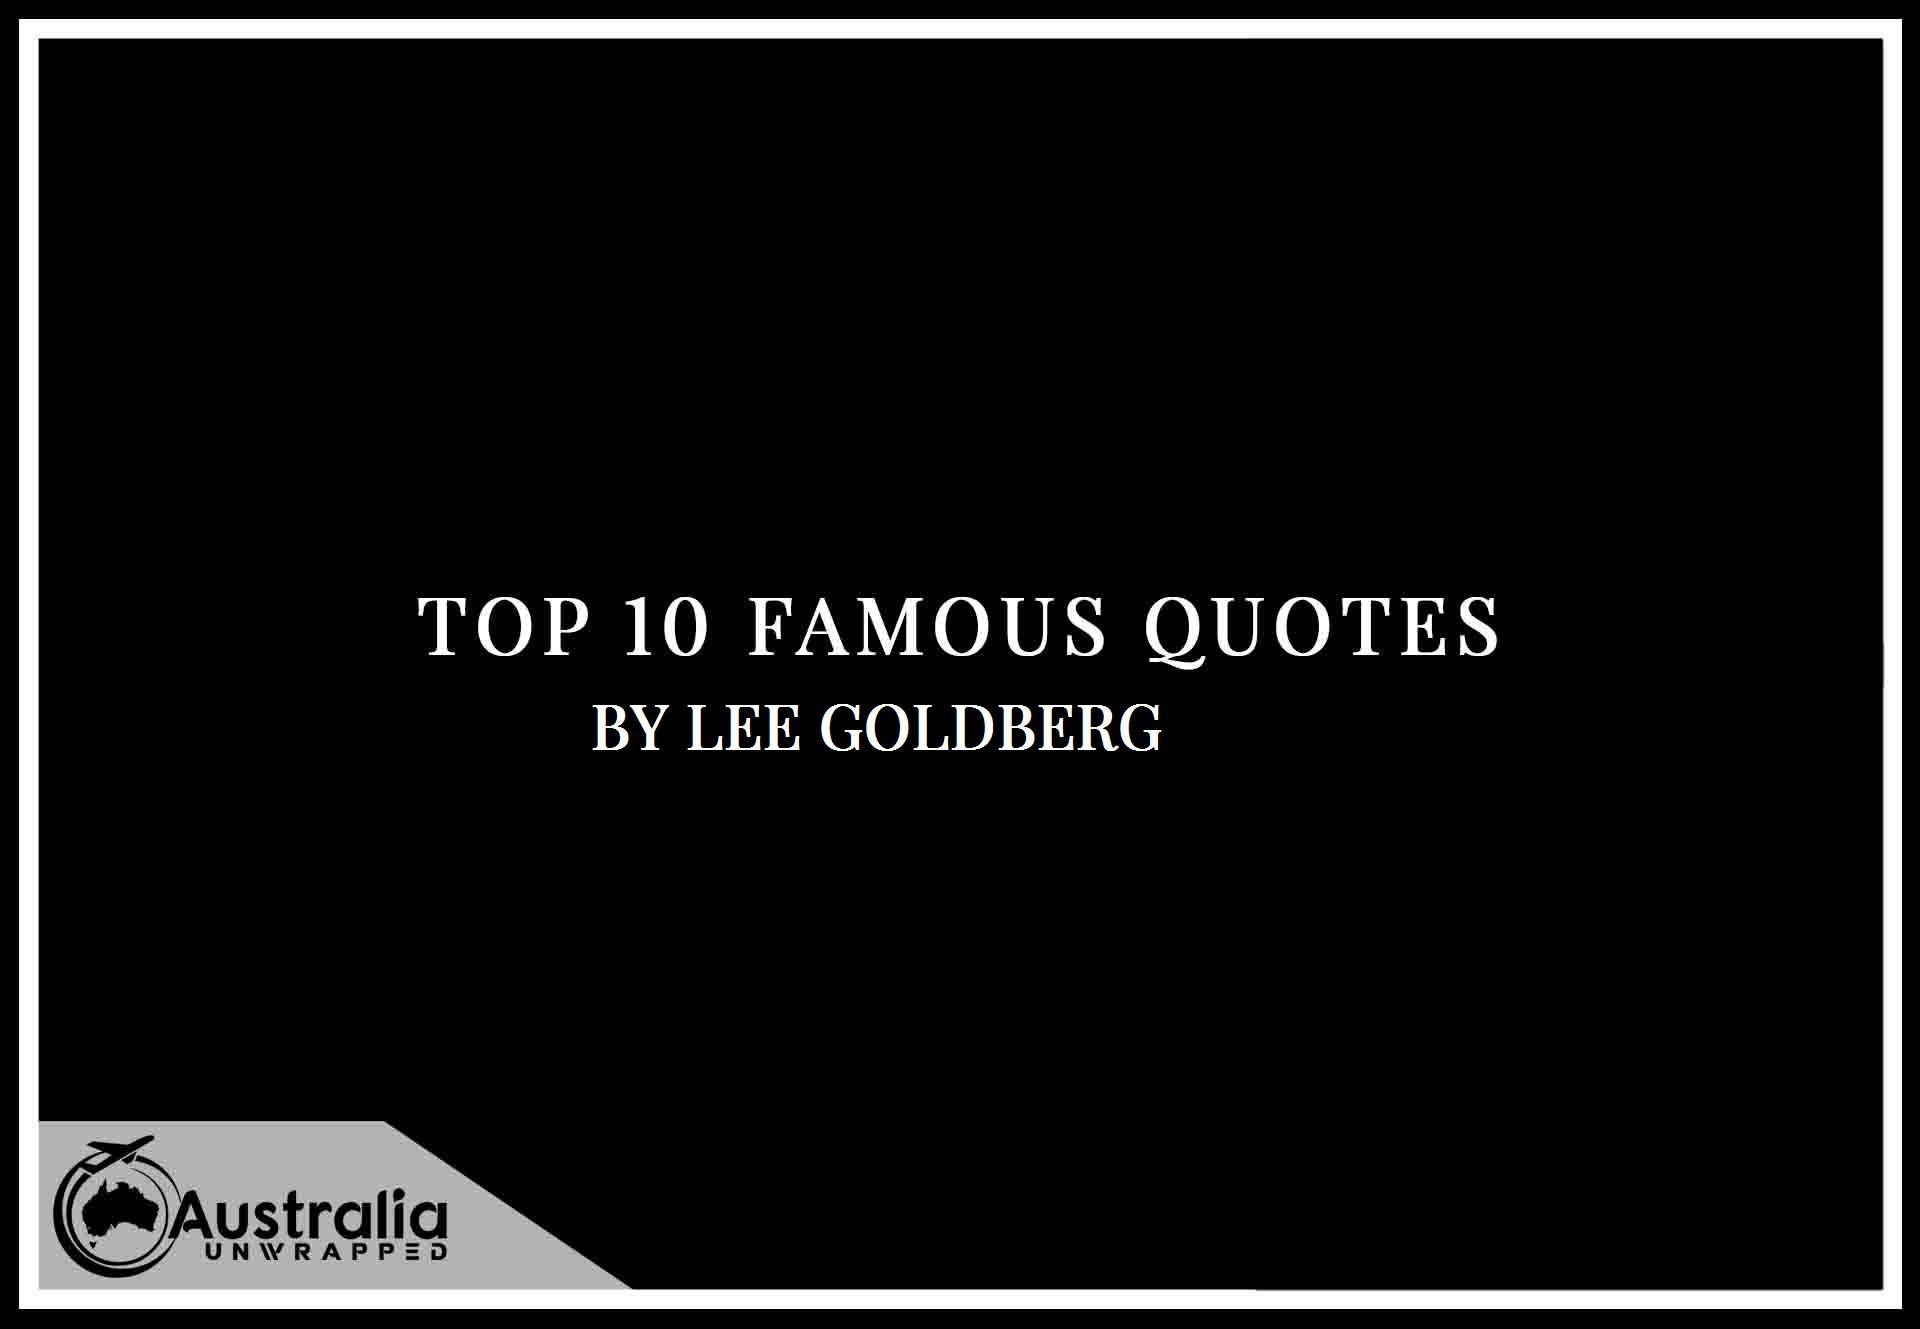 Lee Goldberg's Top 10 Popular and Famous Quotes